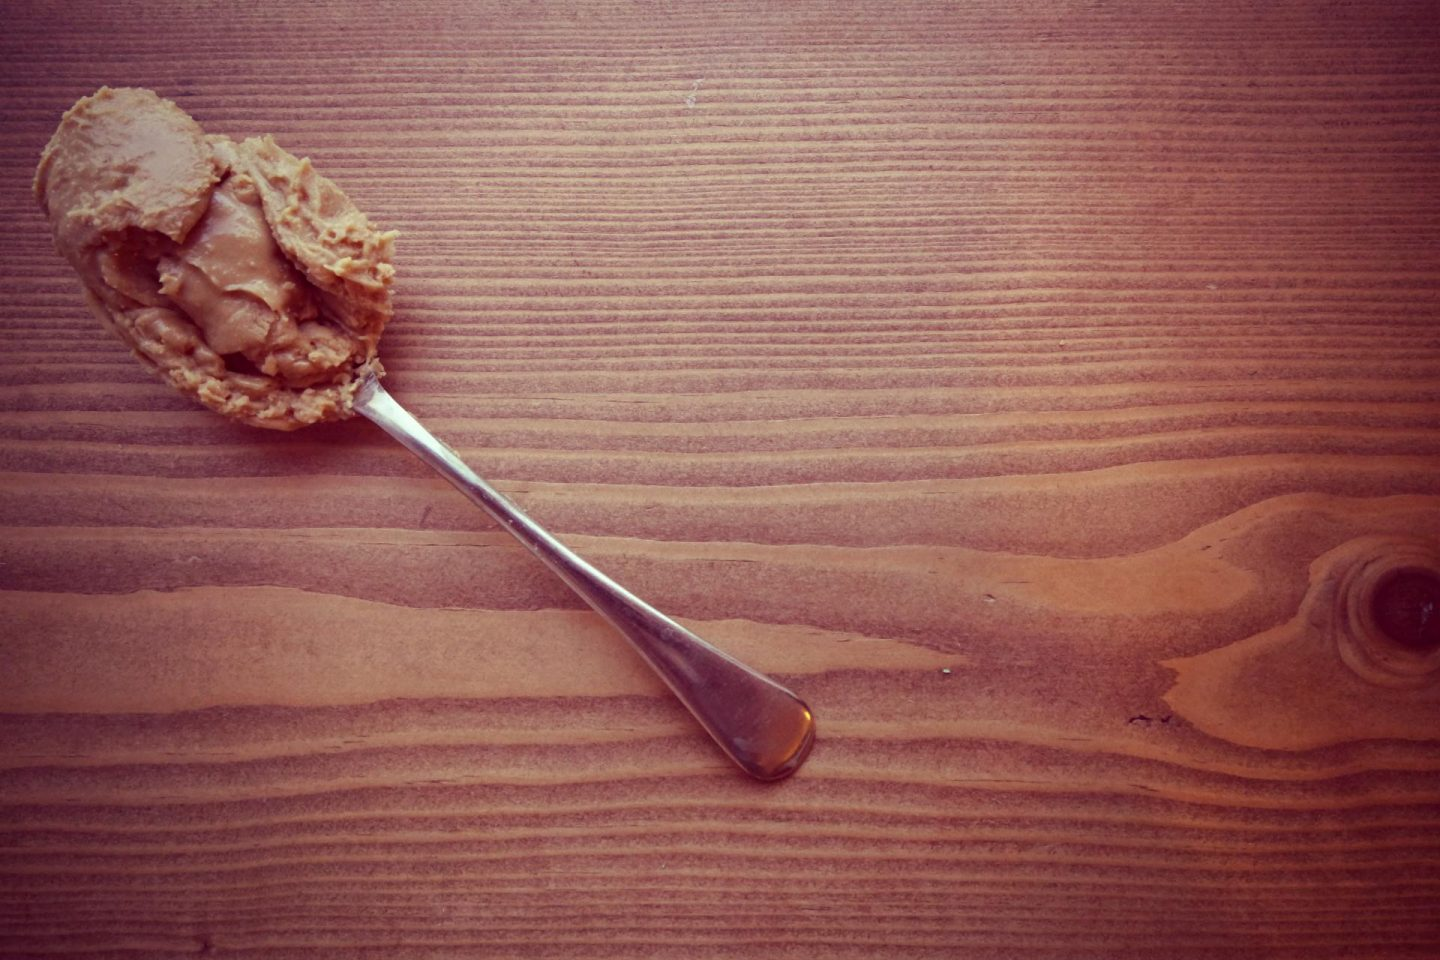 a wooden table with an old silver spoon on it covered in peanut butter